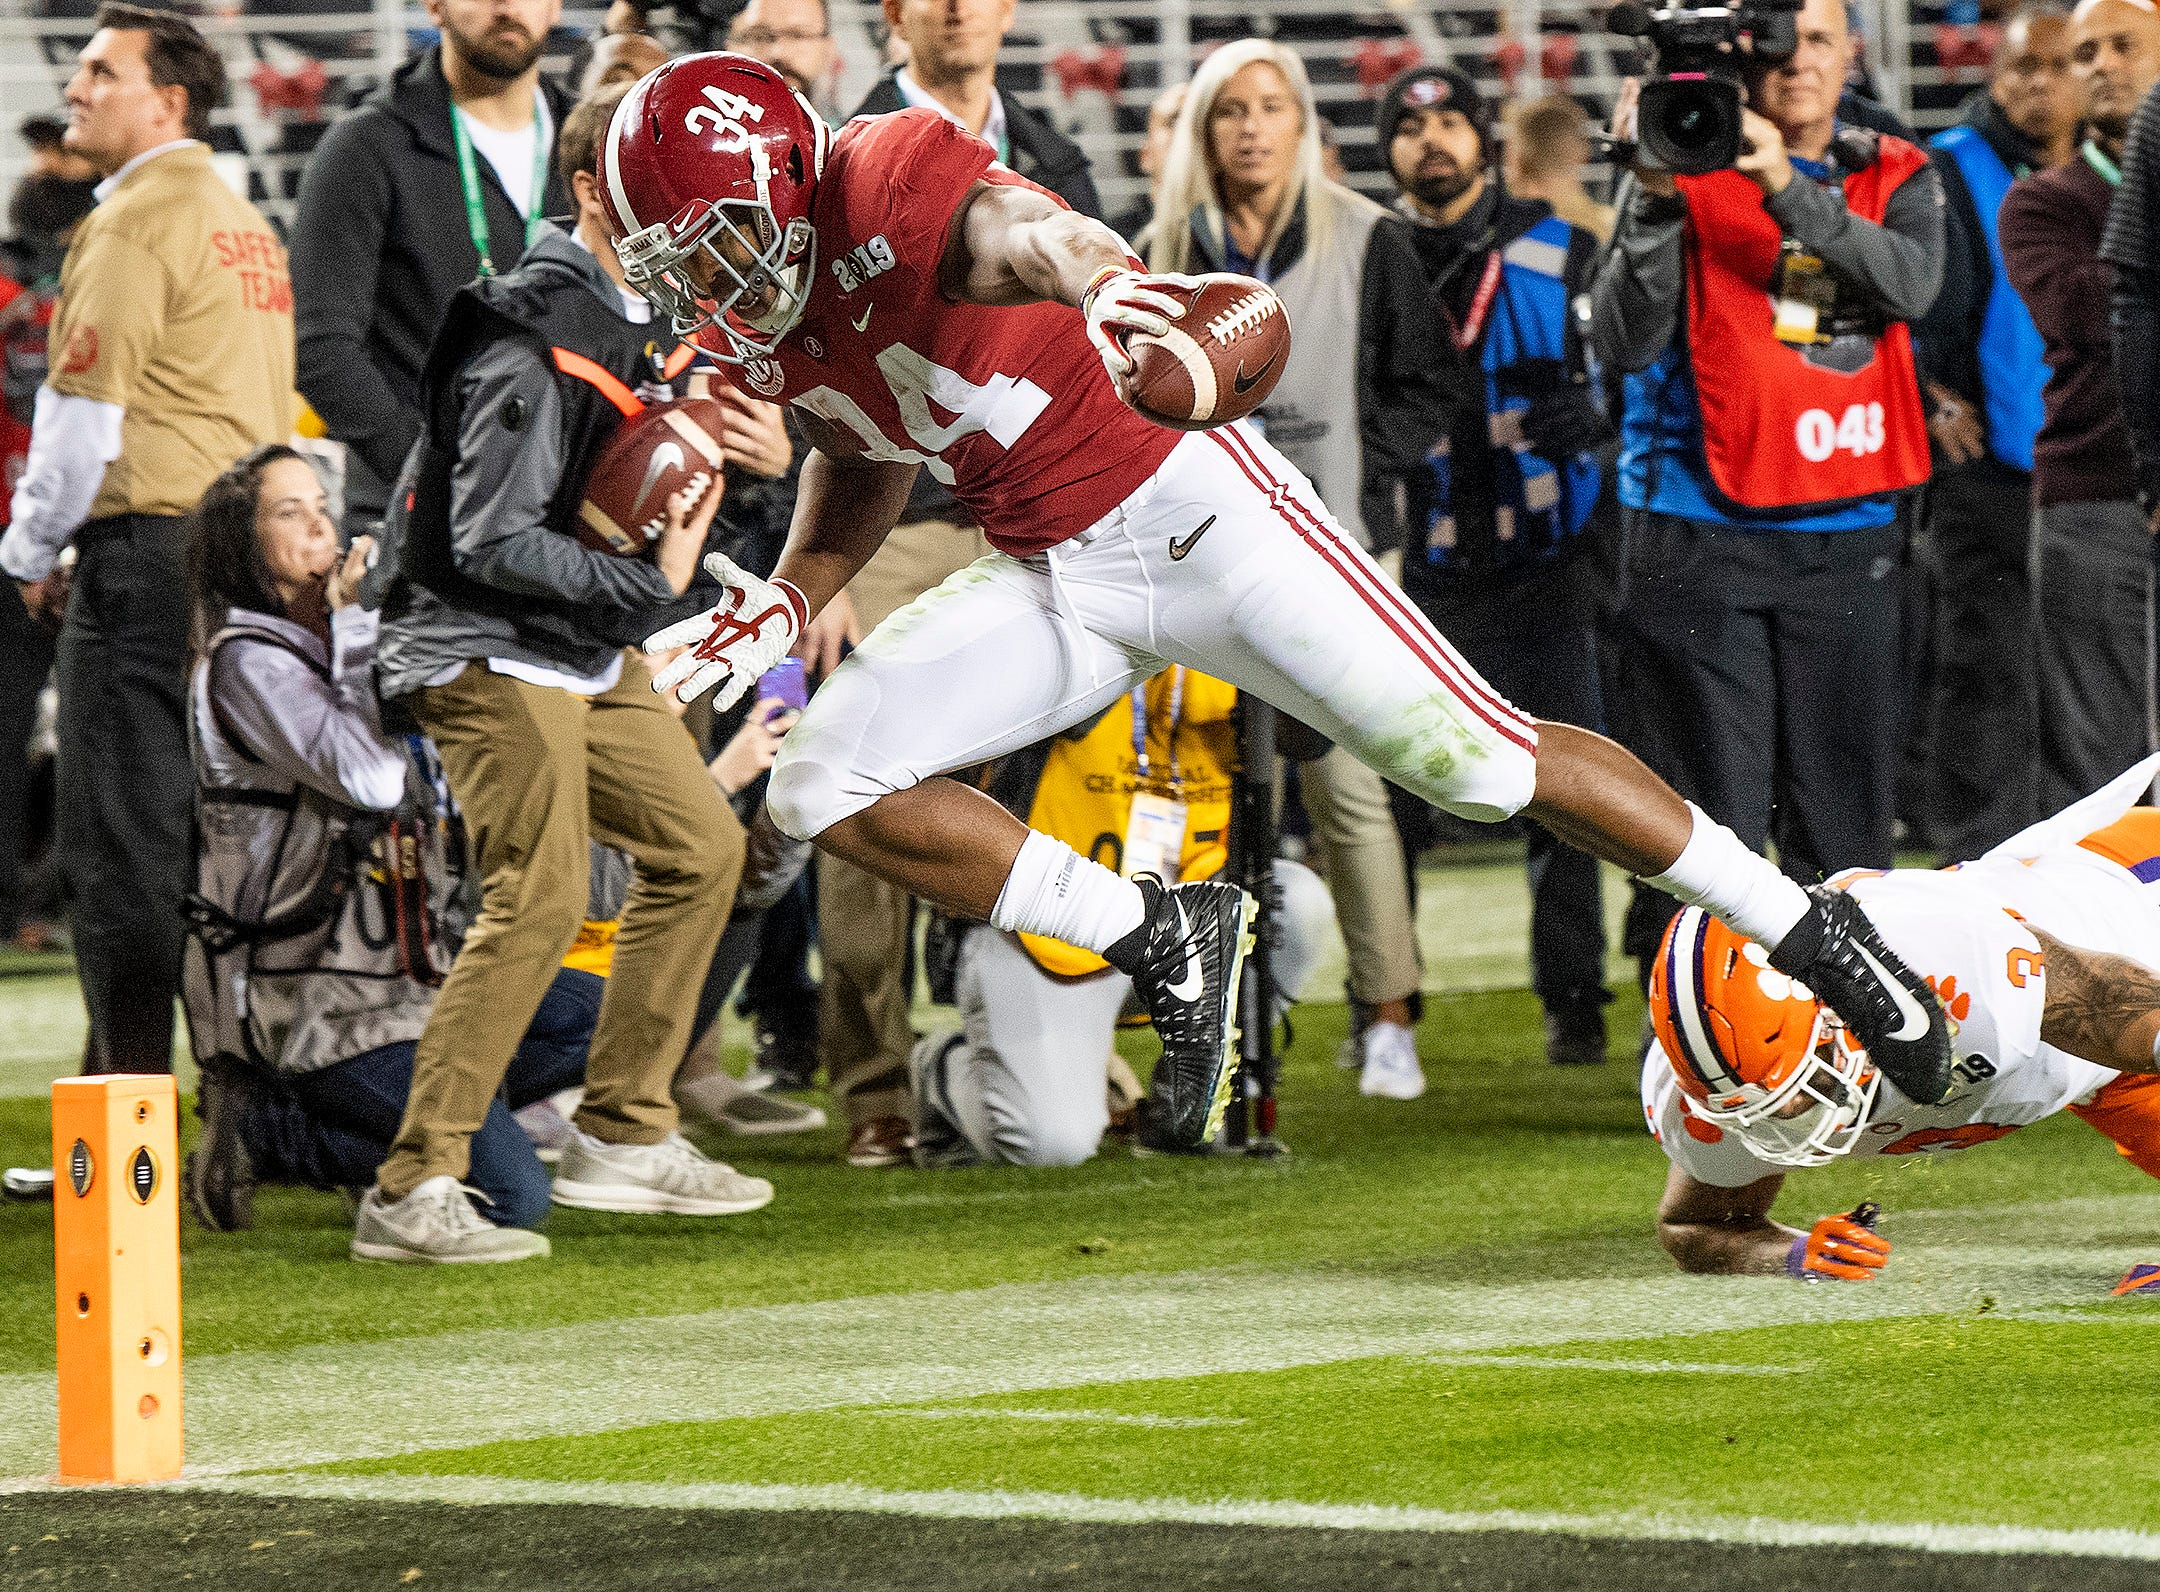 Alabama running back Damien Harris (34) is forced out of bounds by Clemson defensive end Xavier Thomas (3) in second half action of the College Football Playoff National Championship game at Levi's Stadium in Santa Clara, Ca., on Monday January 7, 2019.